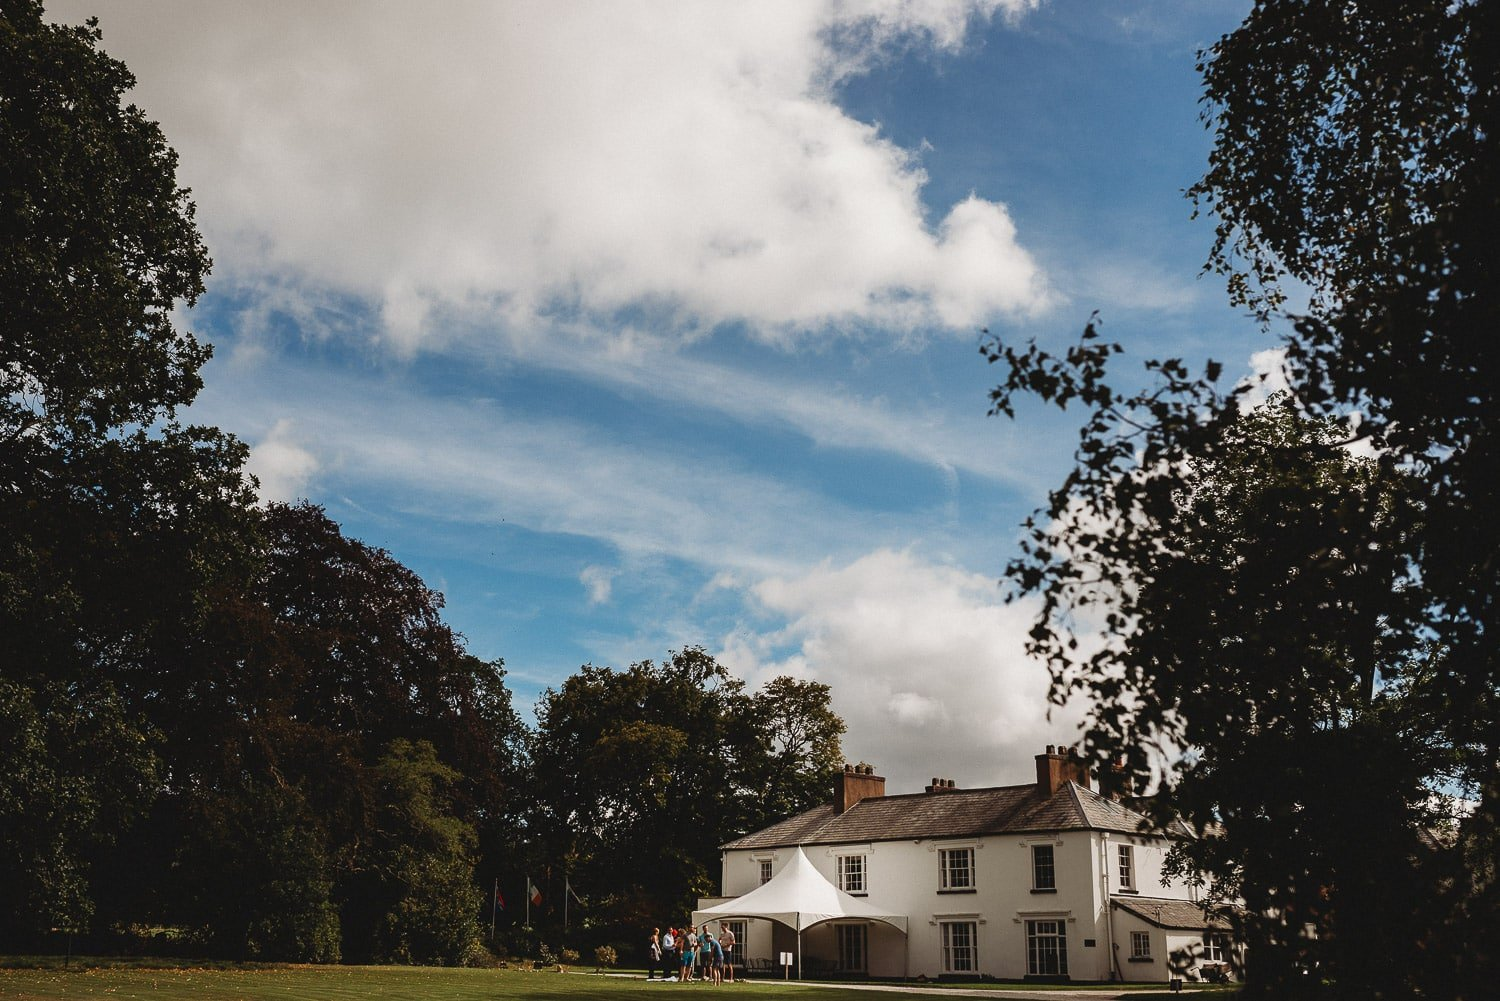 Pentre Mawr Country House with blue sky